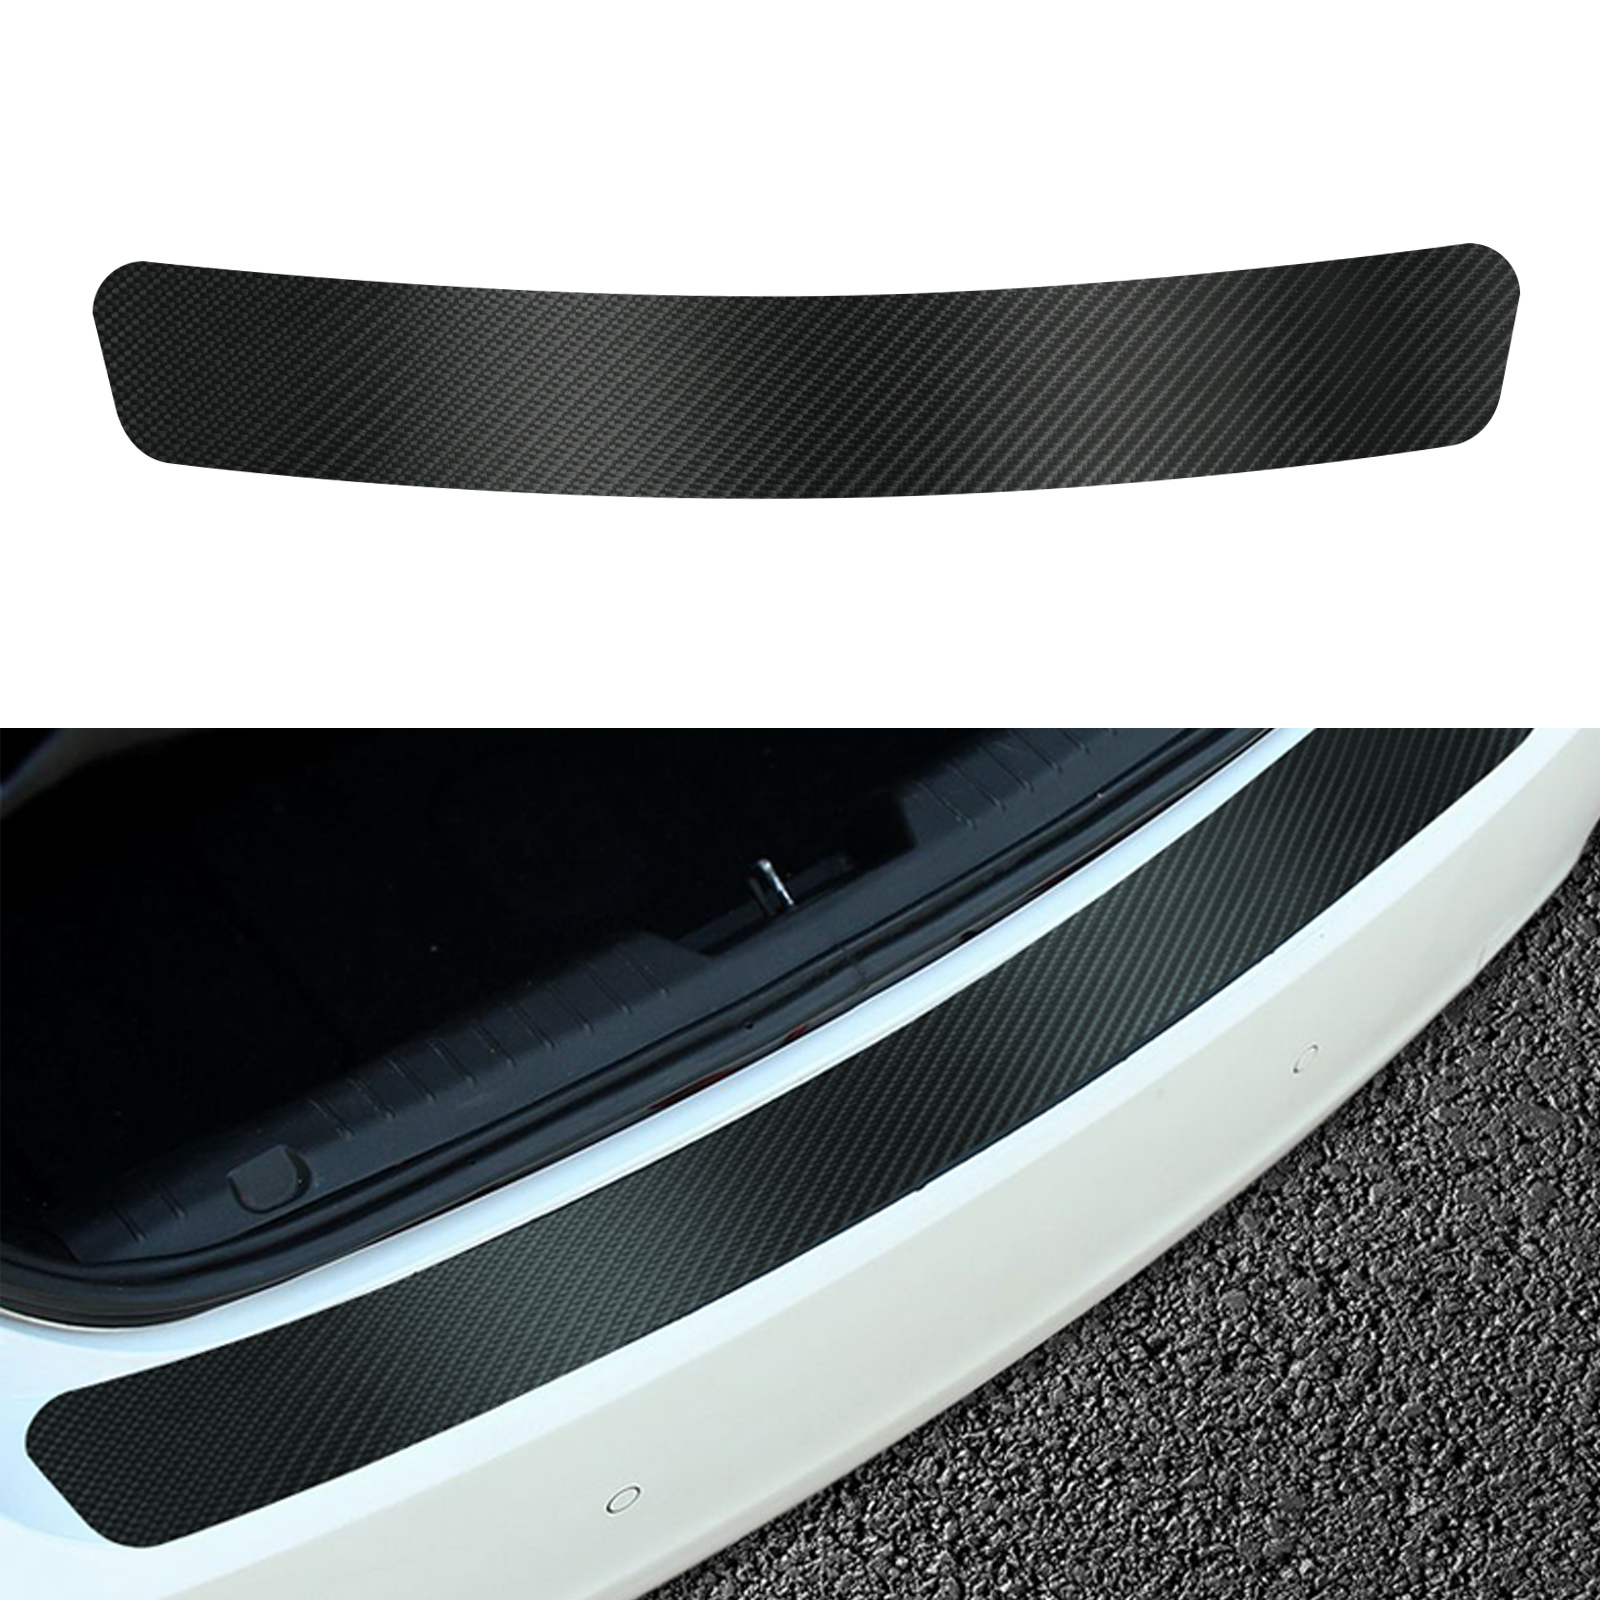 Carbon fiber car rear guard bumper 4d sticker panel protector anti scratch walmart com